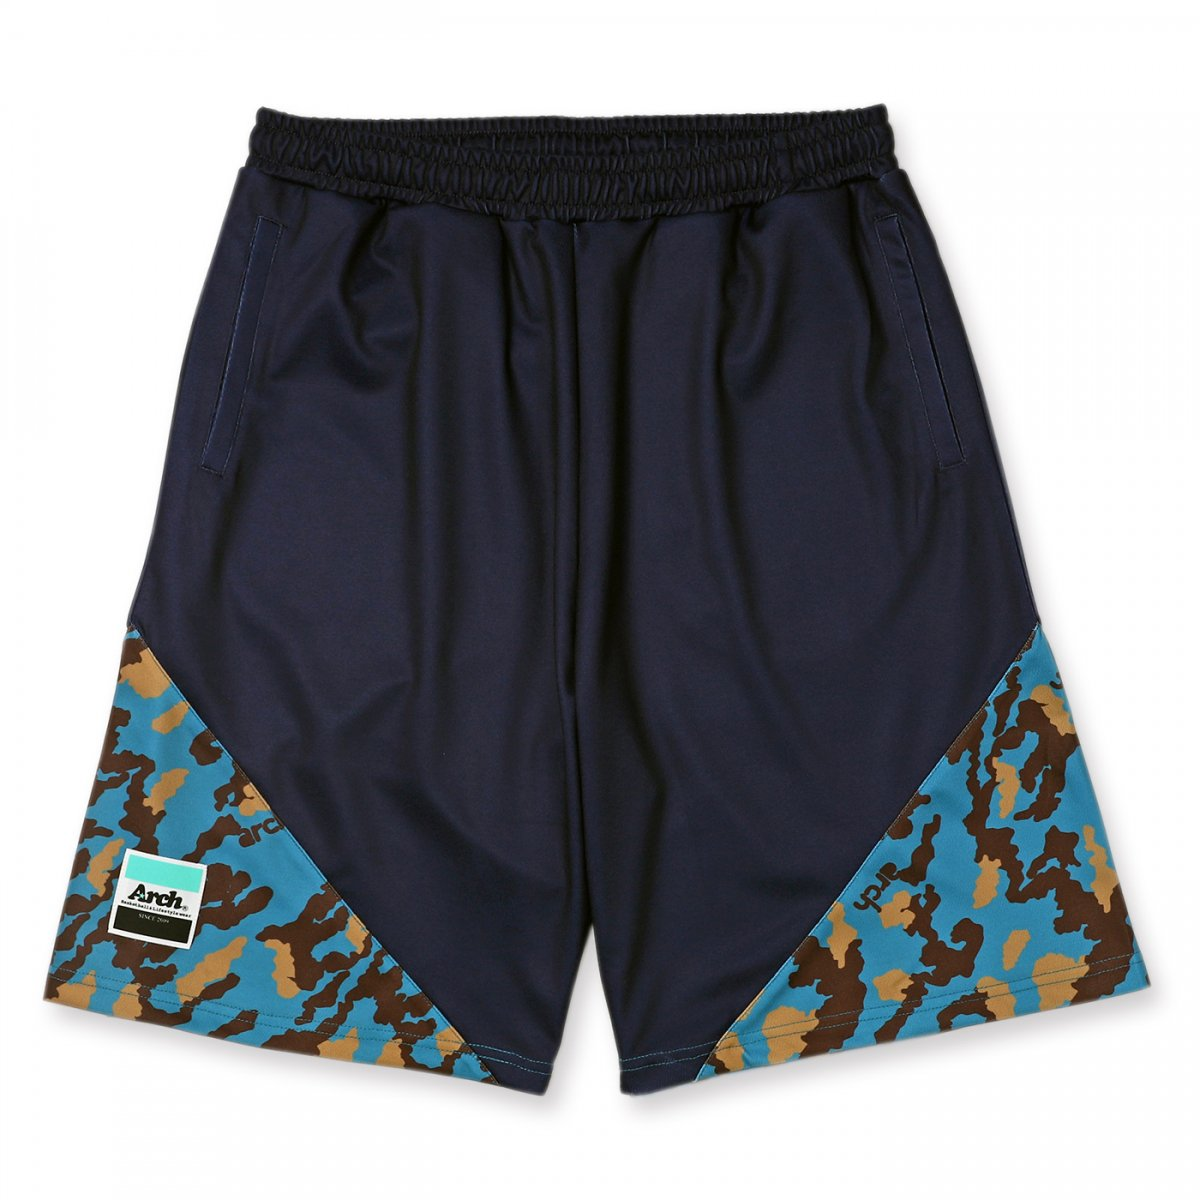 flex camo shorts【navy】